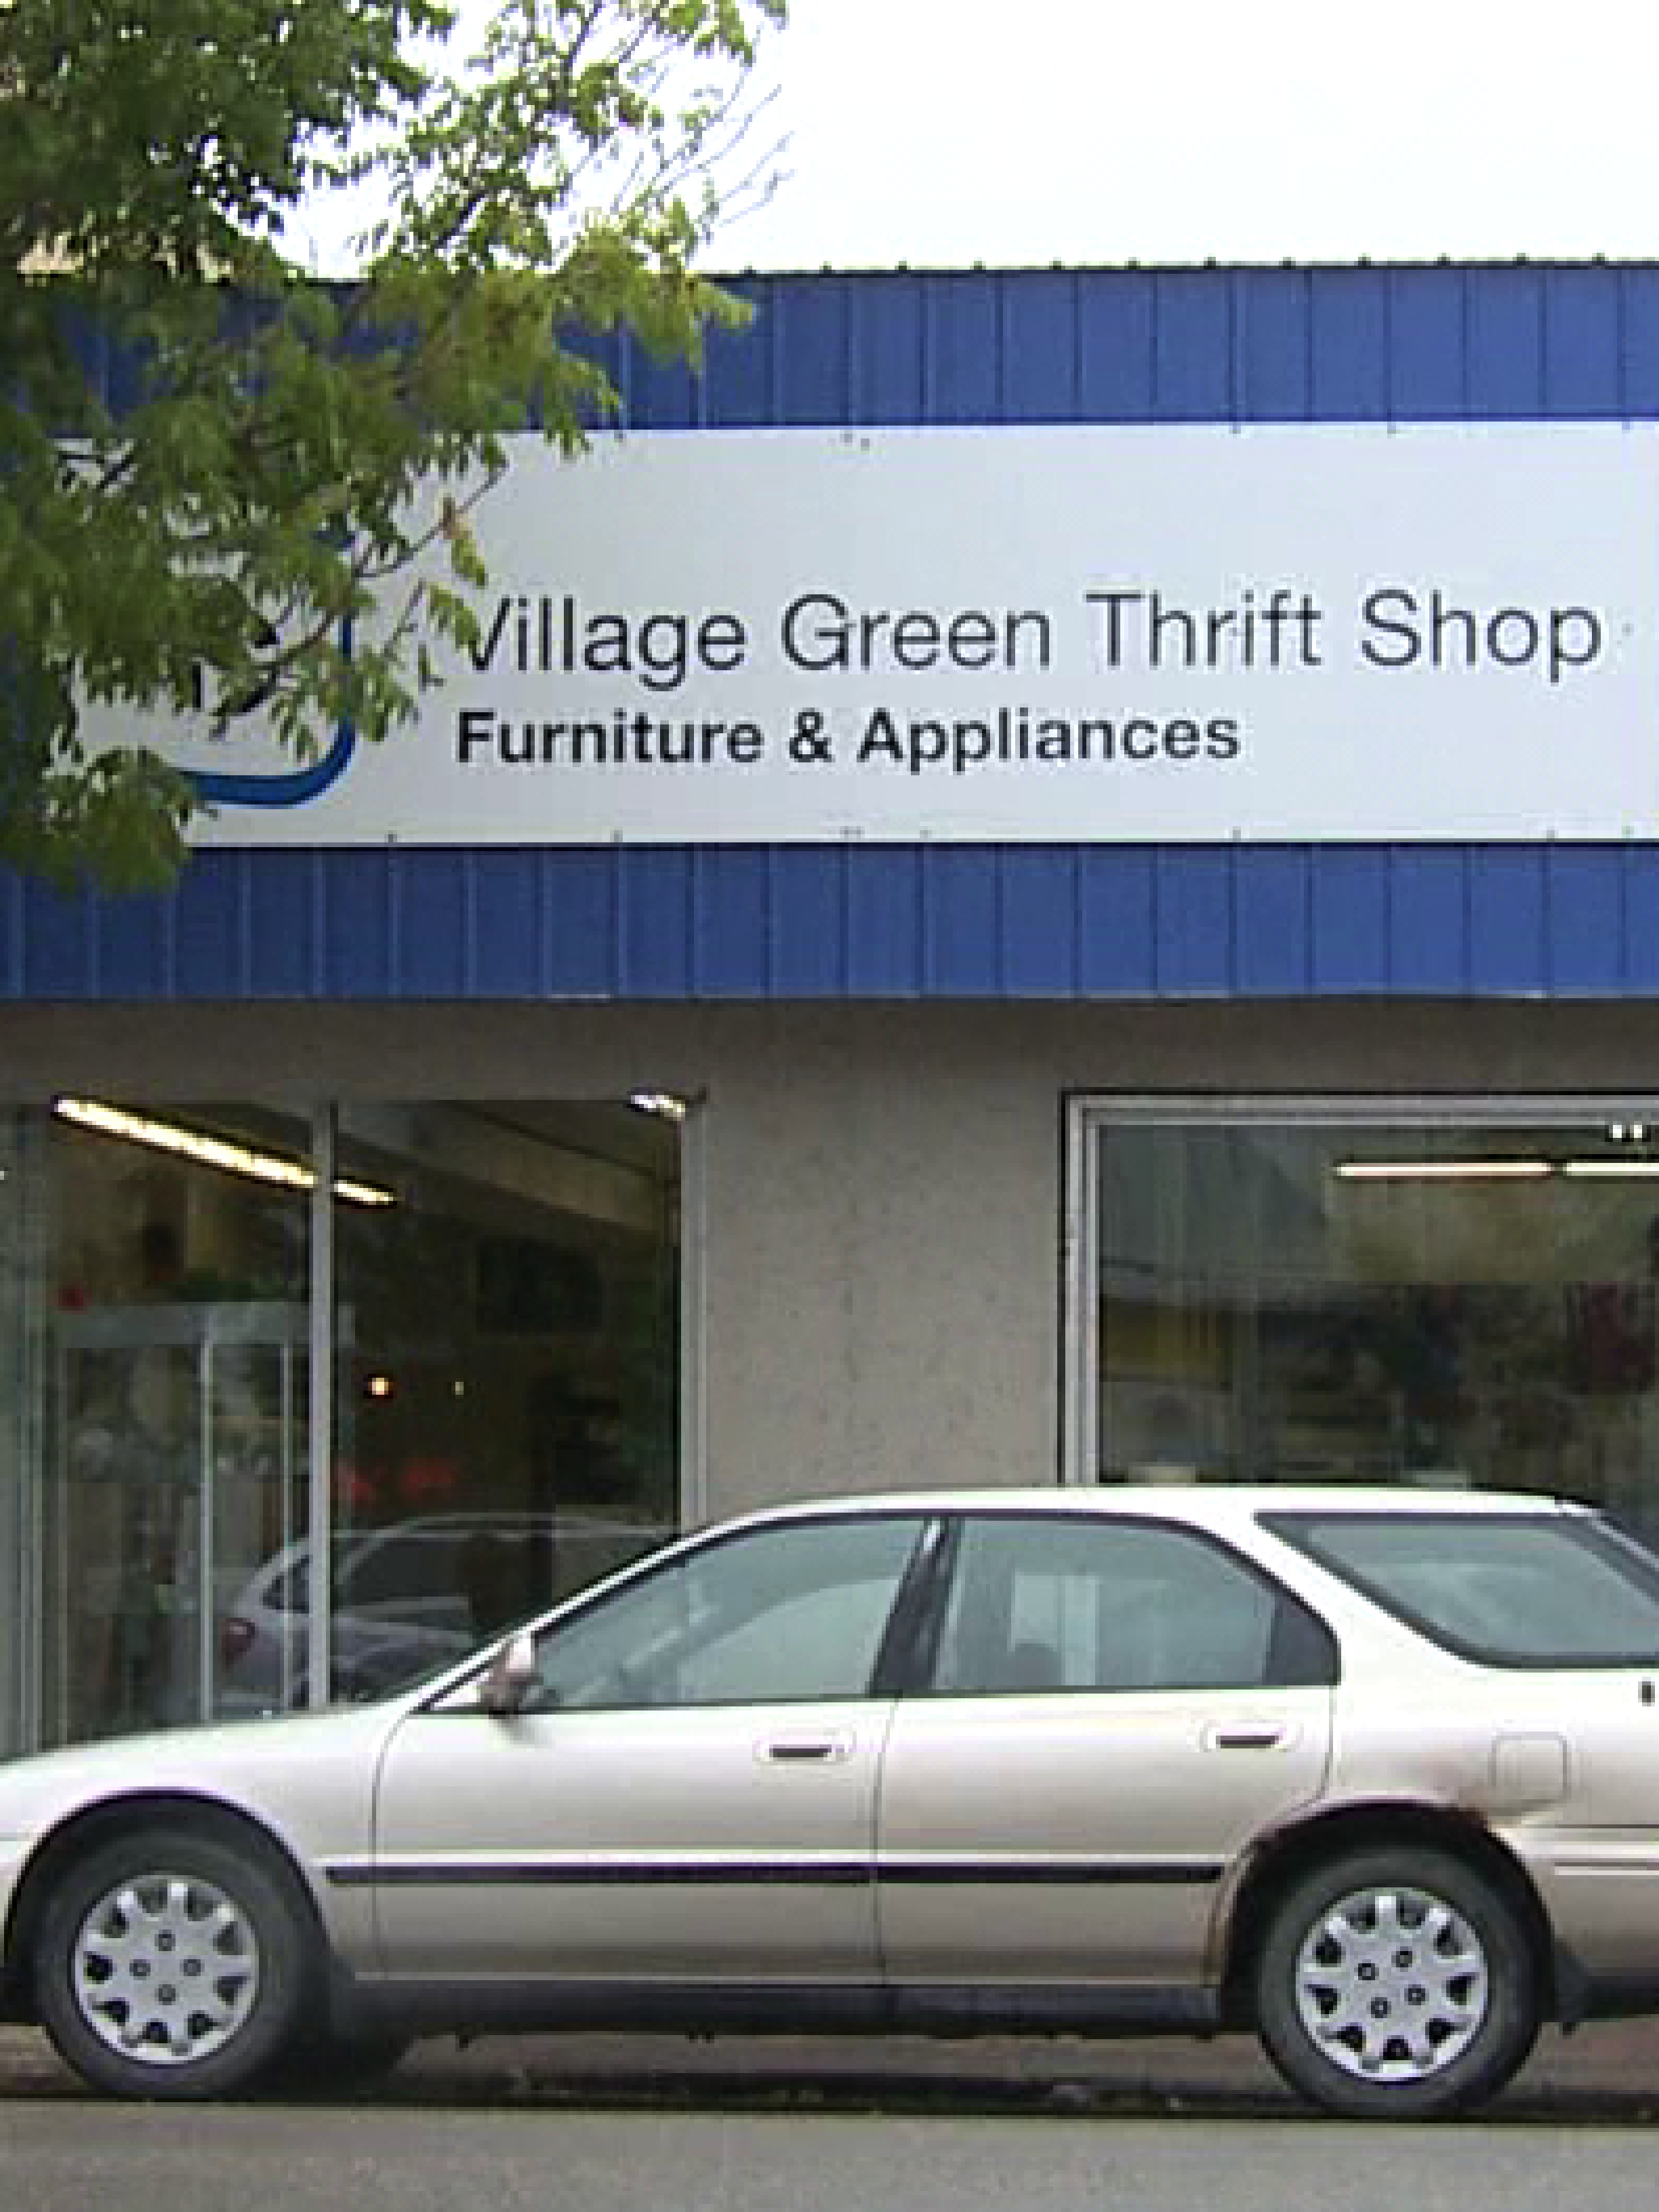 Community Ethics Mennonite Style: Village Green Thrift Shop - Furniture and Appliances